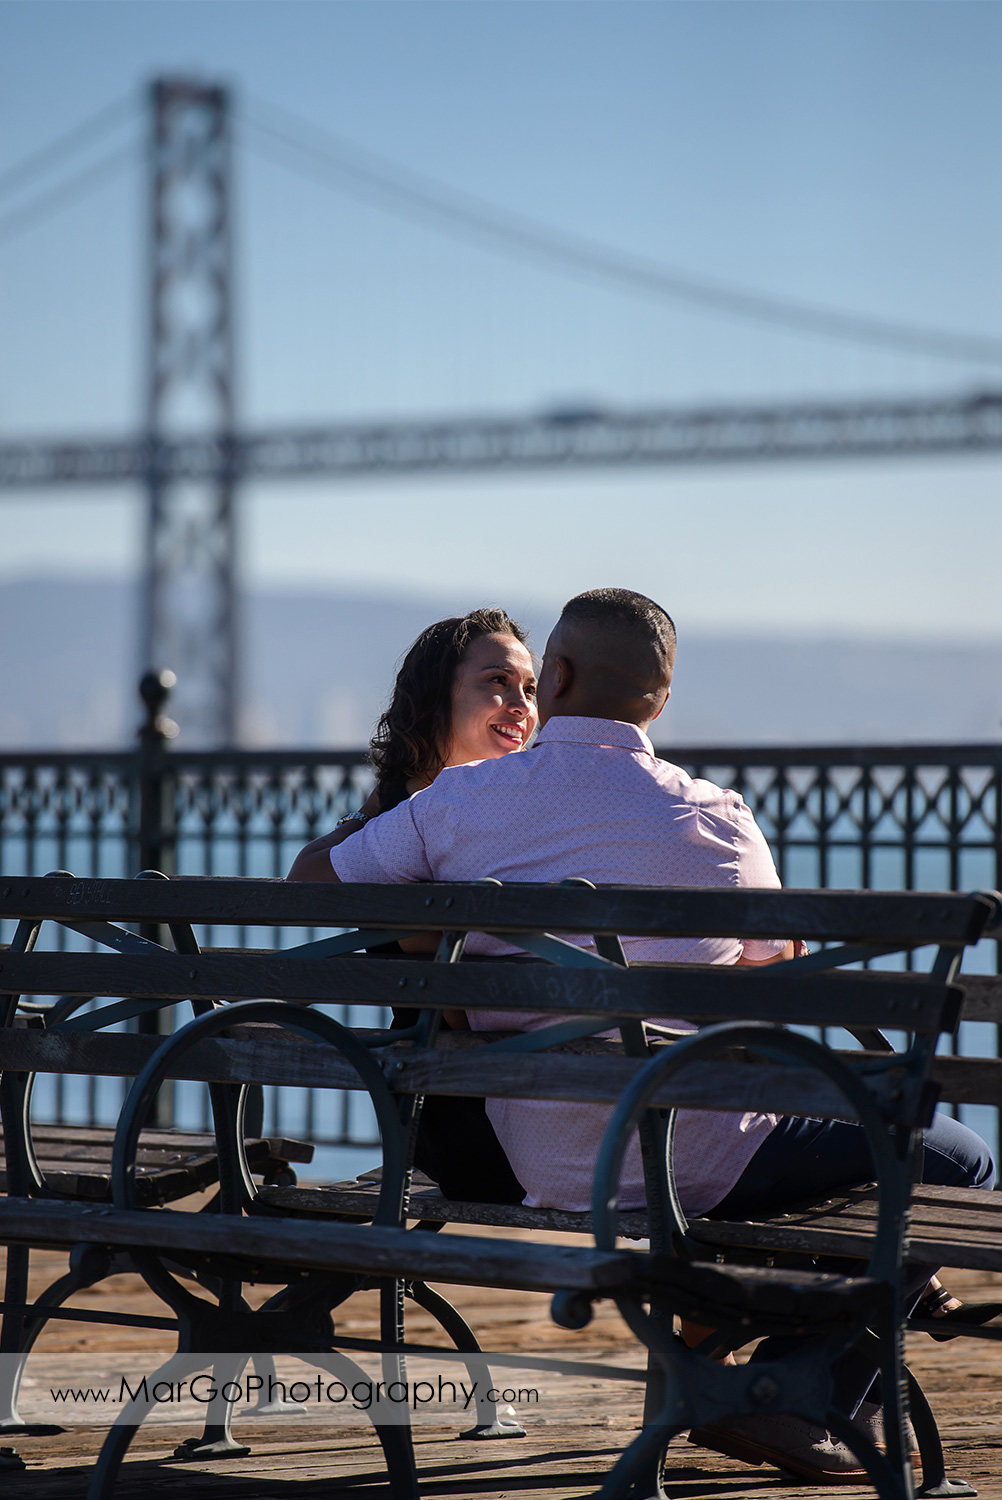 engagement session at Pier 7 in San Francisco - couple on the bench with the Bay Bridge in the background